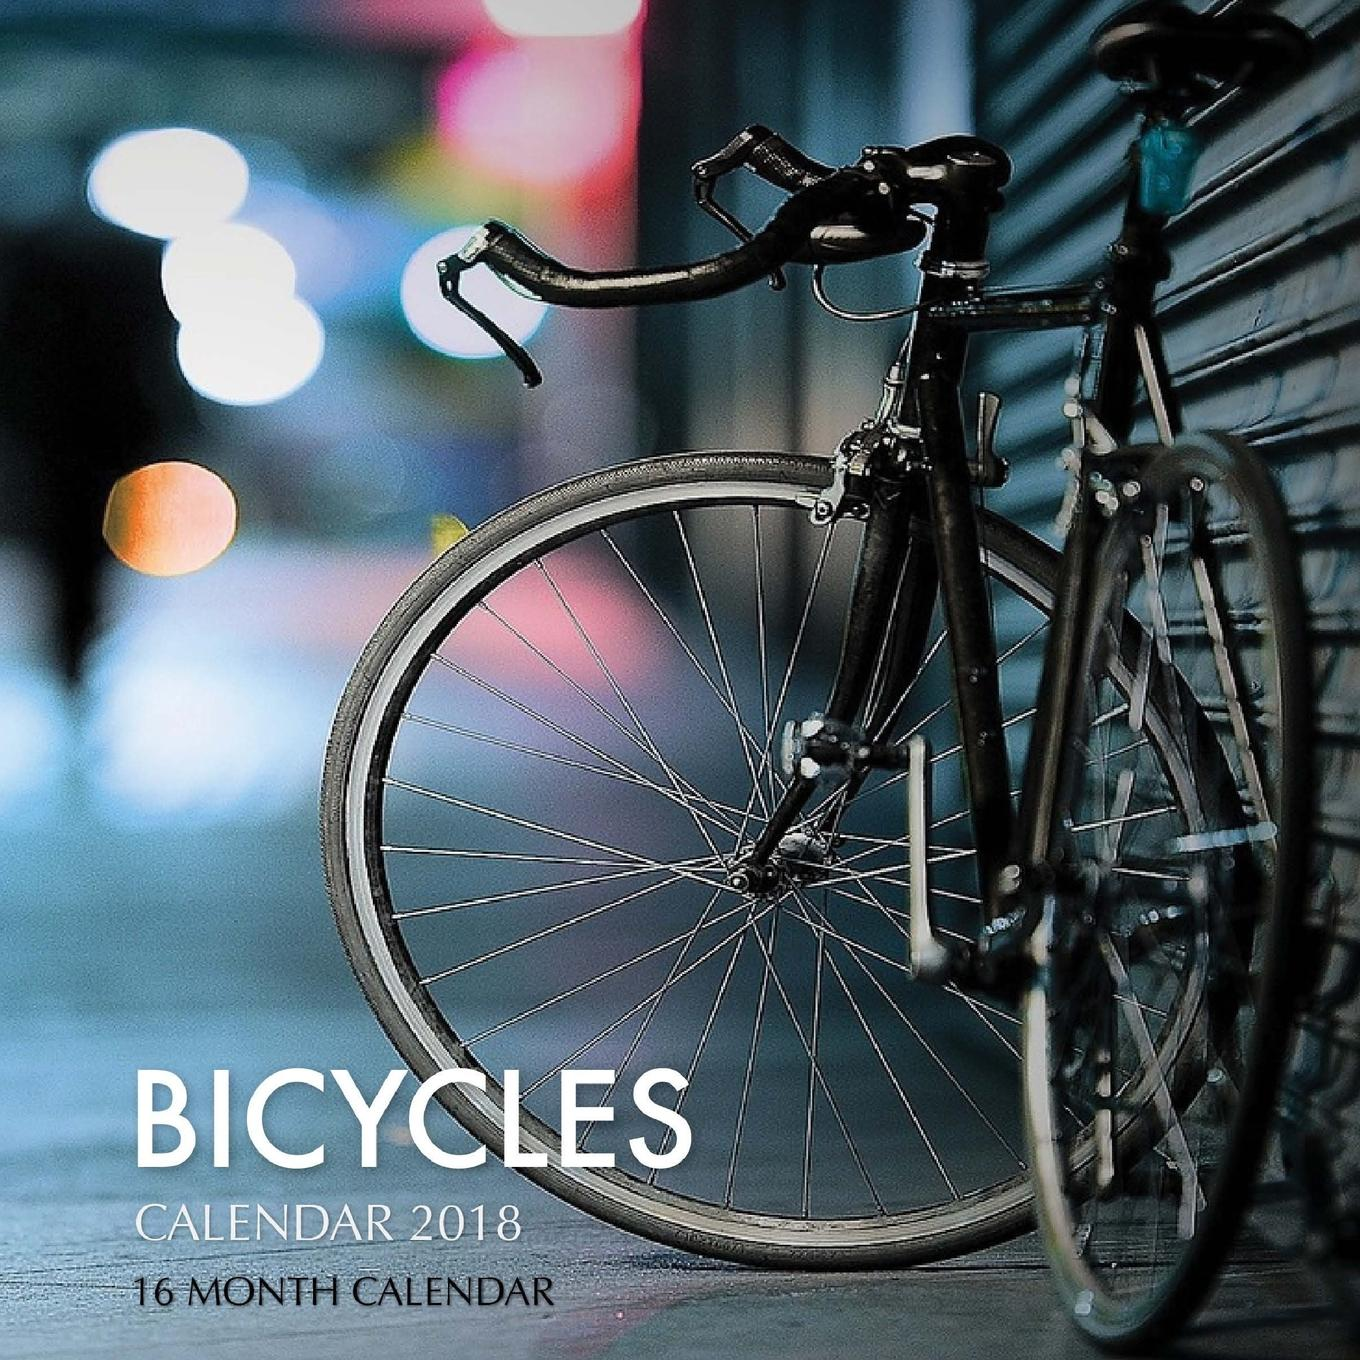 Bicycles Calendar 2018: 16 Month Calendar (Paperback)